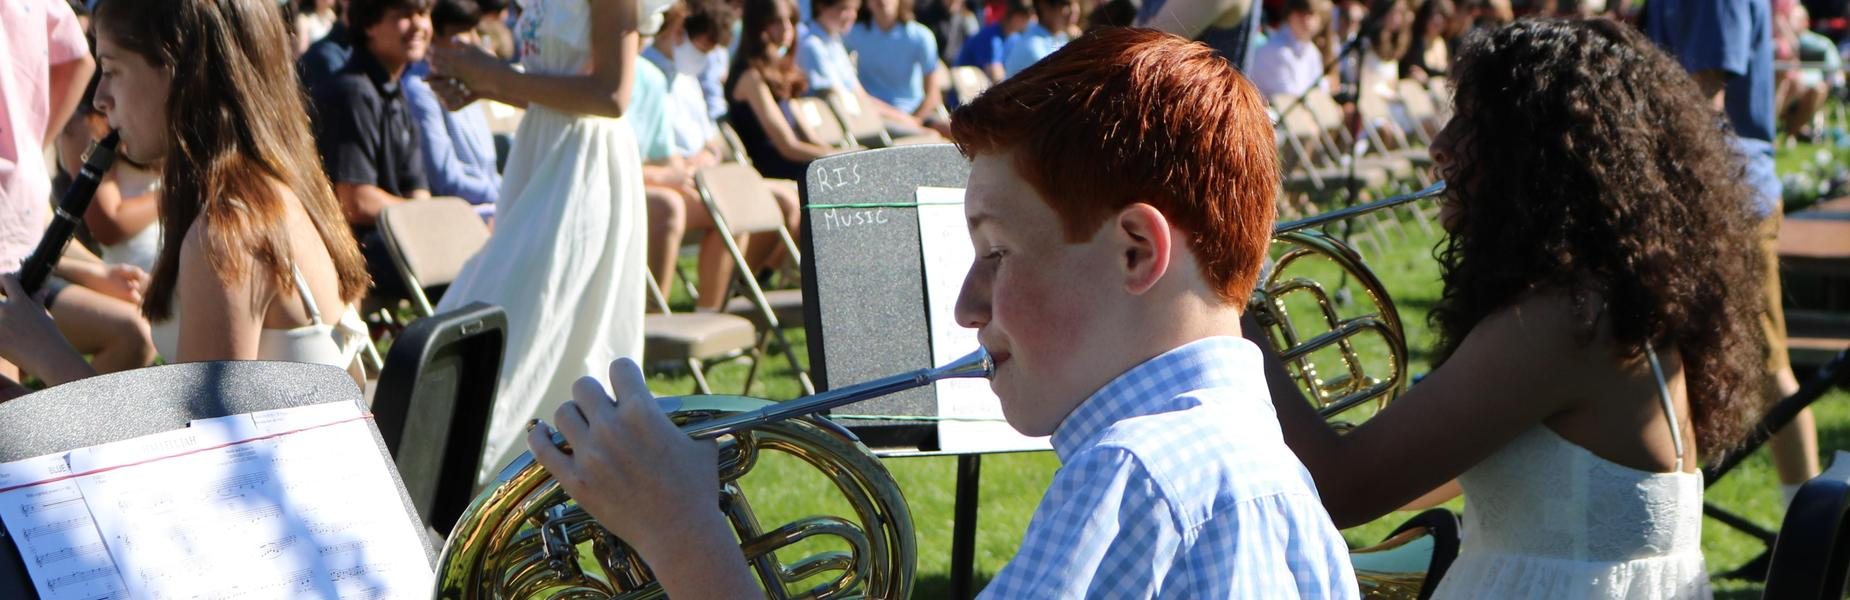 Photo of 8th grade french horn players during 8th grade promotion ceremony